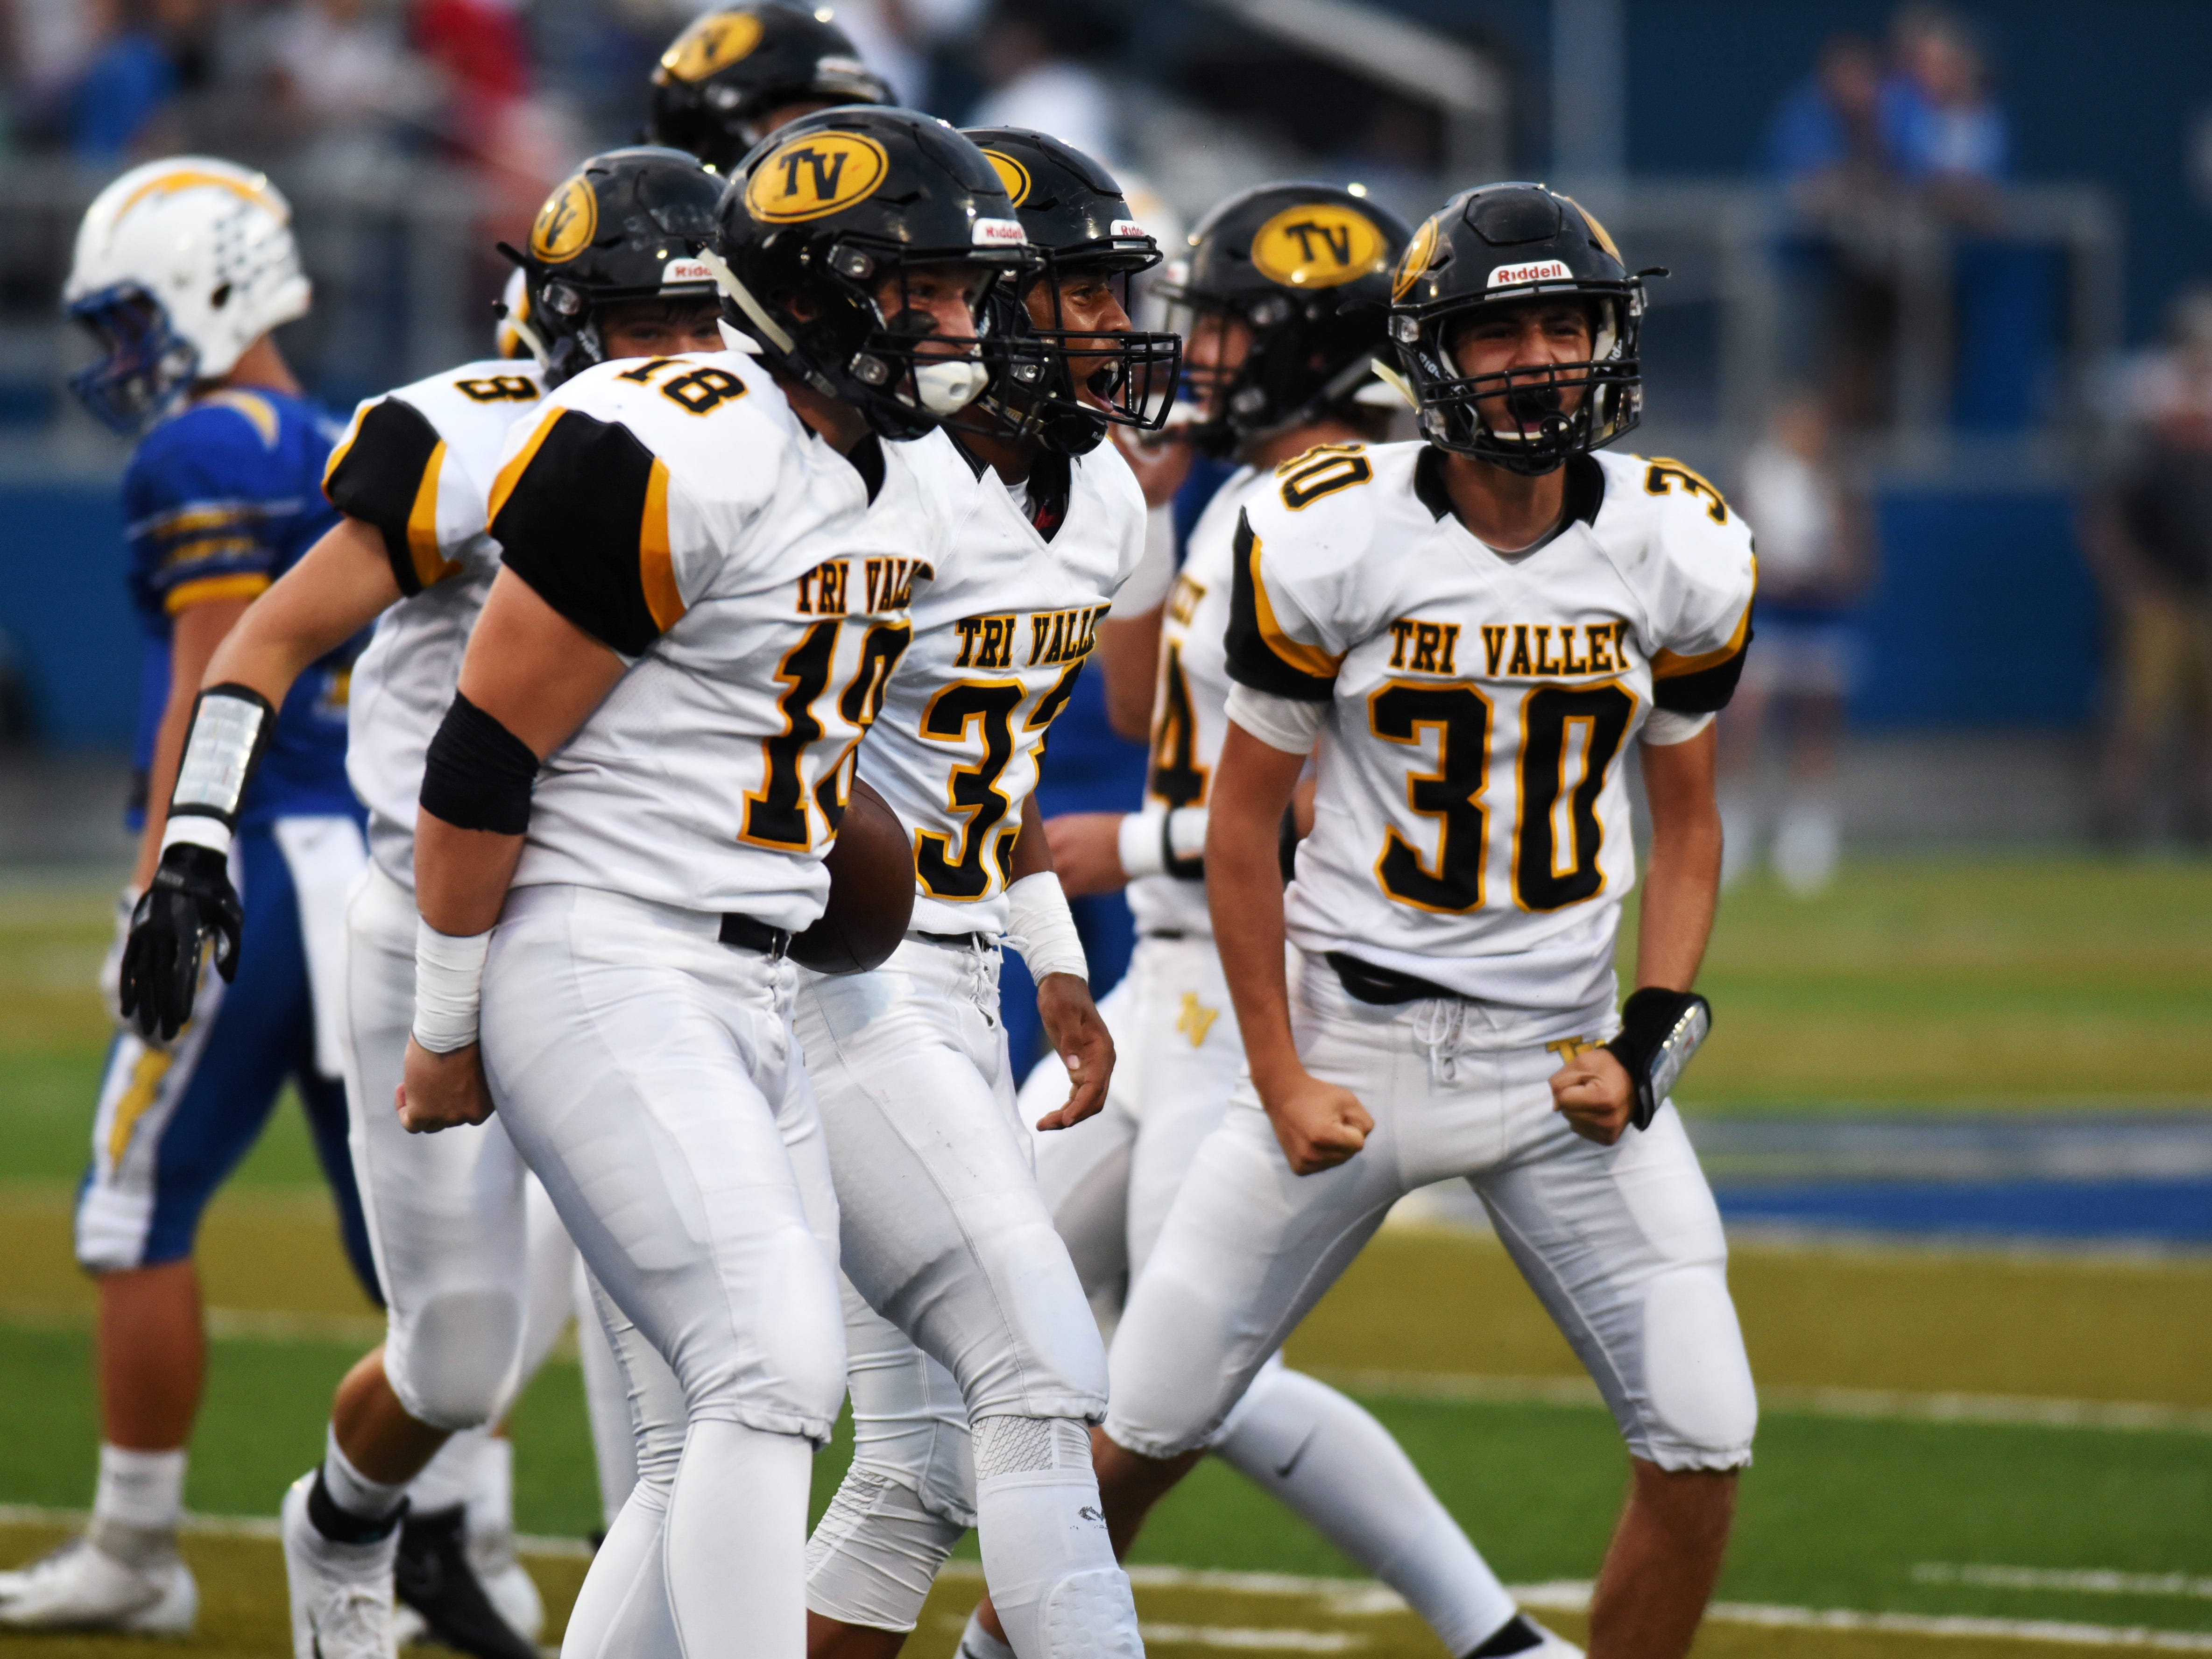 Tri-Valley players celebrate after Jordan Pantaleo, middle, recovered a fumble in the first half of a 28-14 comeback win against Philo on Friday night at Sam Hatfield Stadium.